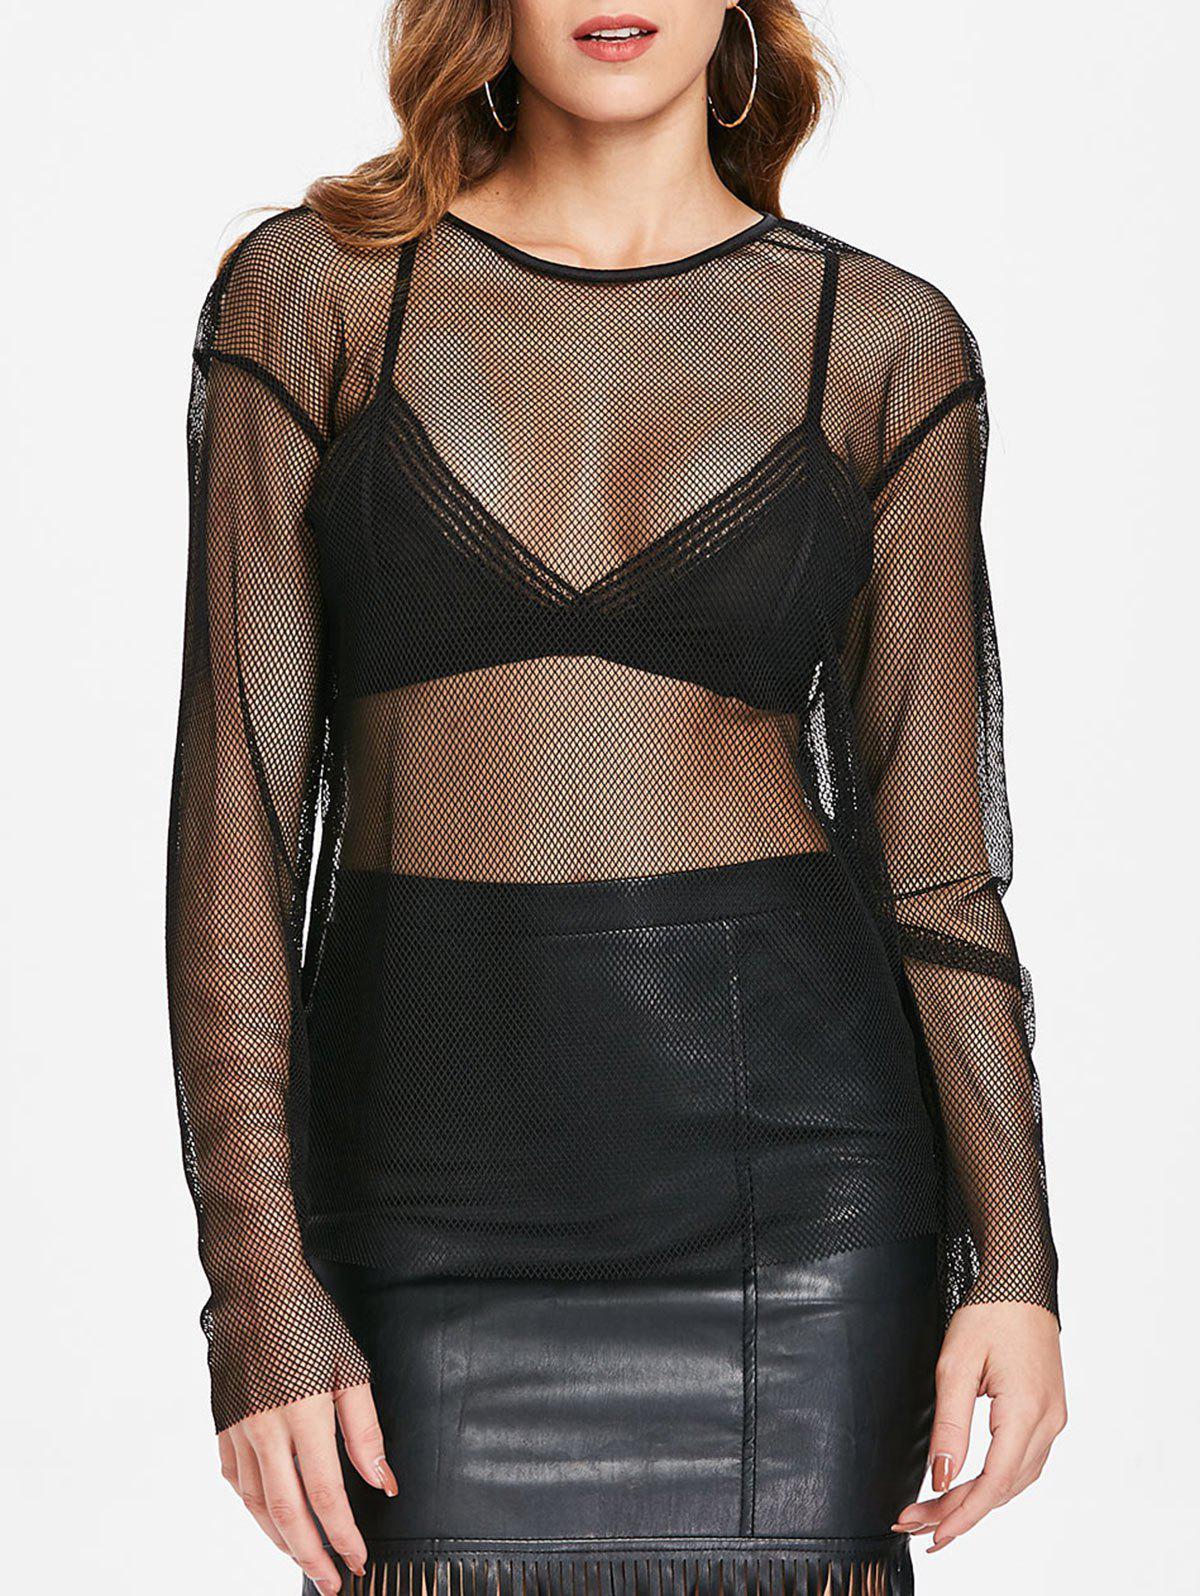 Store Mesh See Through Top